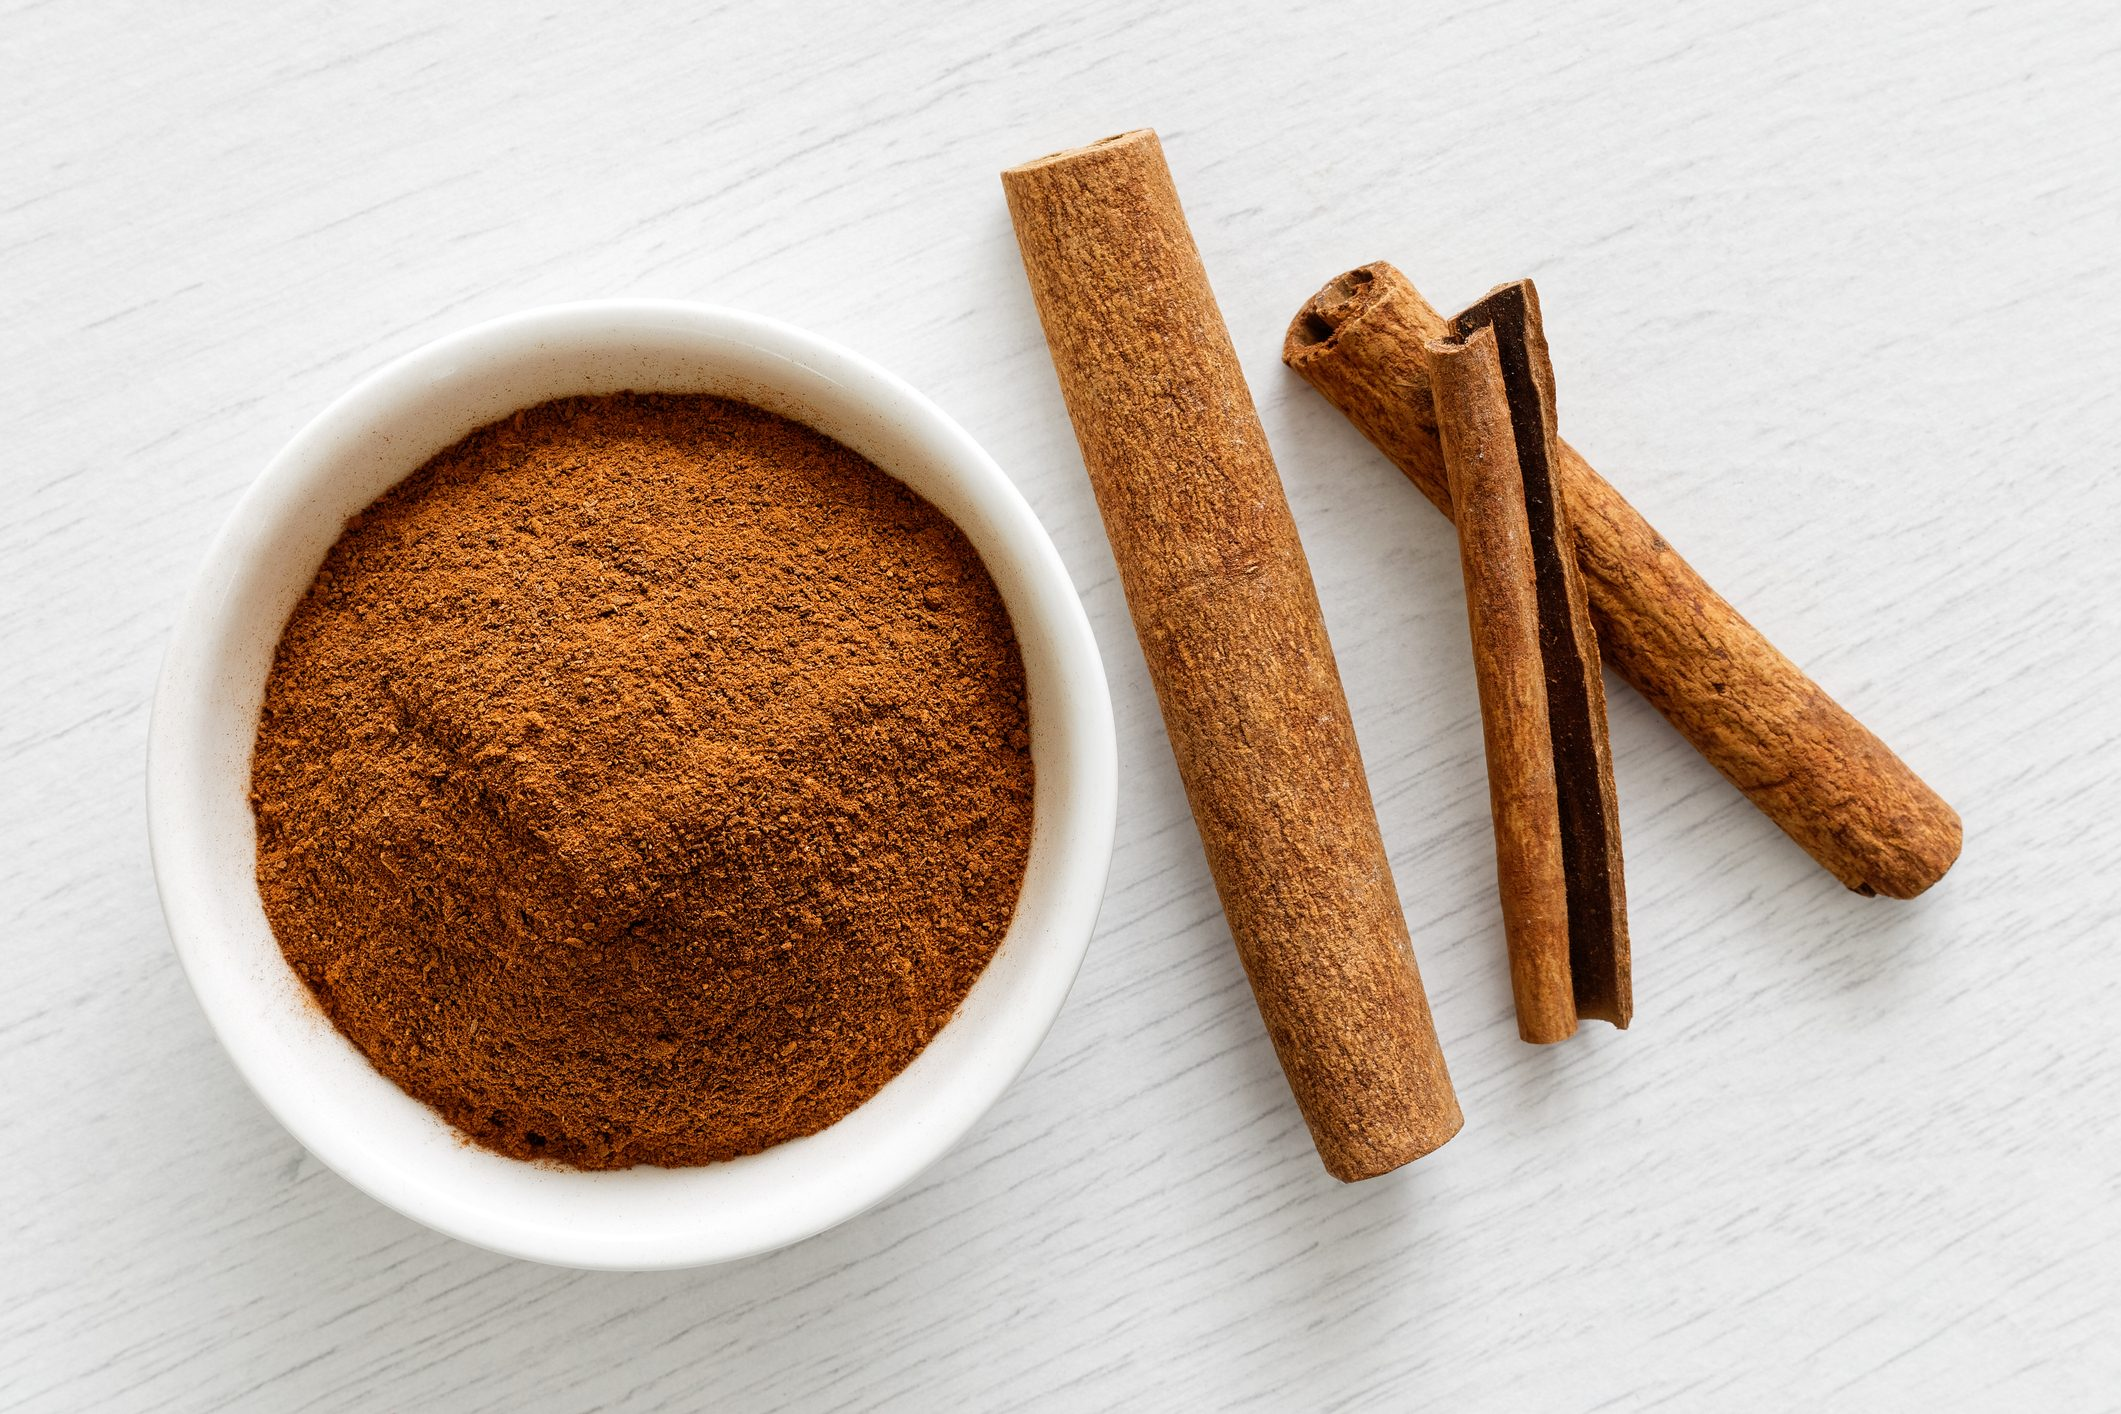 ground cinnamon and cinnamon sticks from above